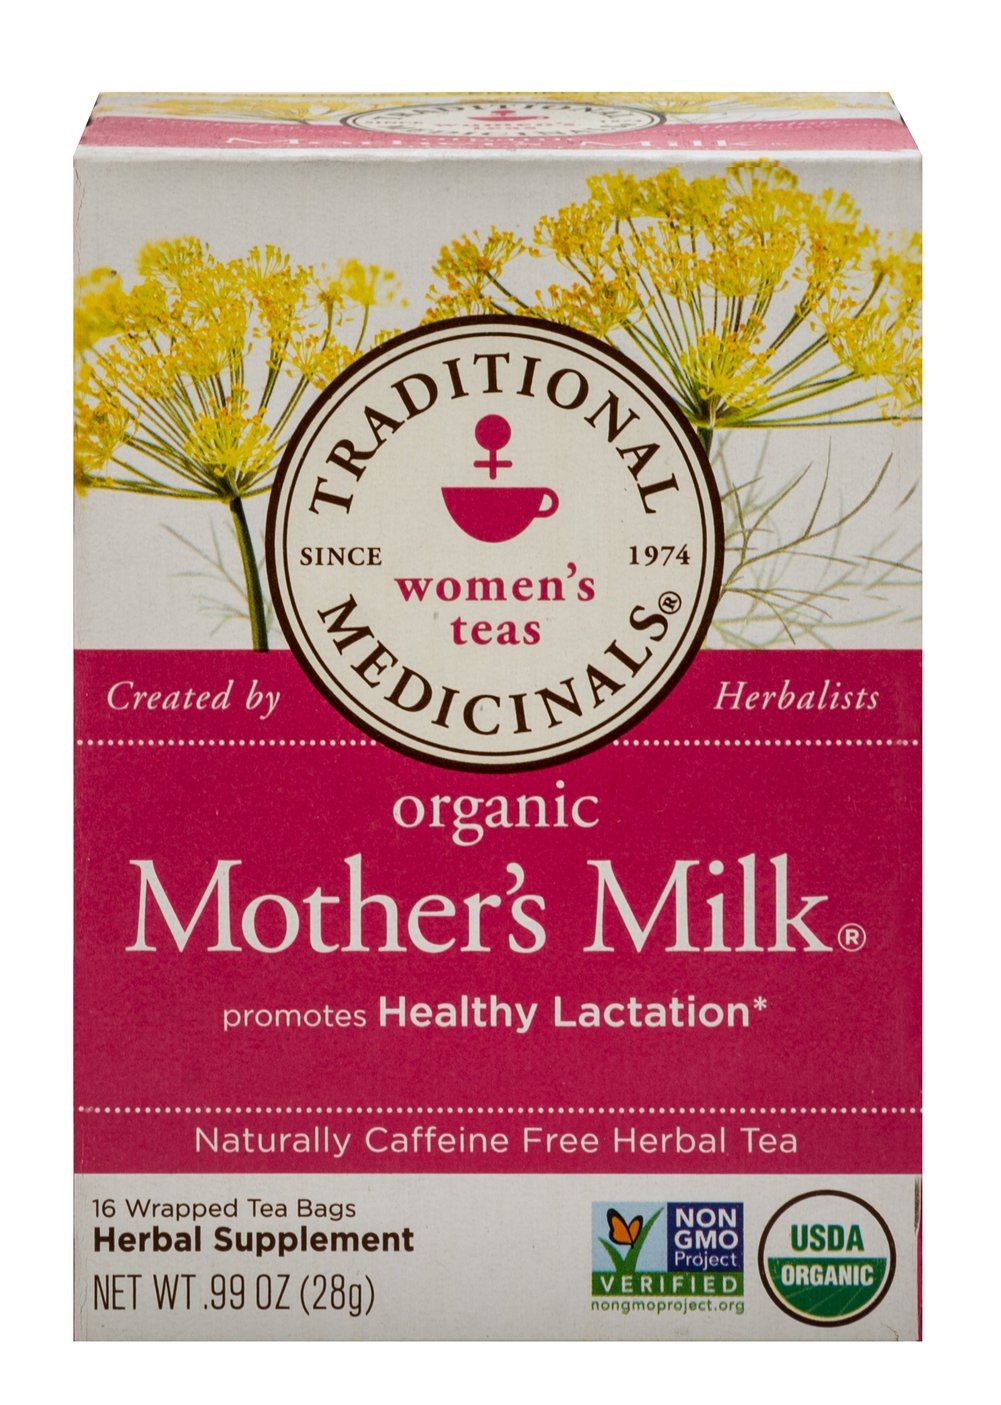 Organic Mother's Milk® Tea <p><b>From the Manufacturer's Label: </p></b><p>Caffeine Free</p>  <p>Promotes Healthy Lactation**</p>  <p>A pleasantly aromatic balance of sweet, spicy and slightly bitter</p>    <p>Organic Mother's Milk promotes healthy lactation and is traditionally used to increase breast milk production.** This traditional combination of anise, fennel and coriander has been used for centuries by Europea